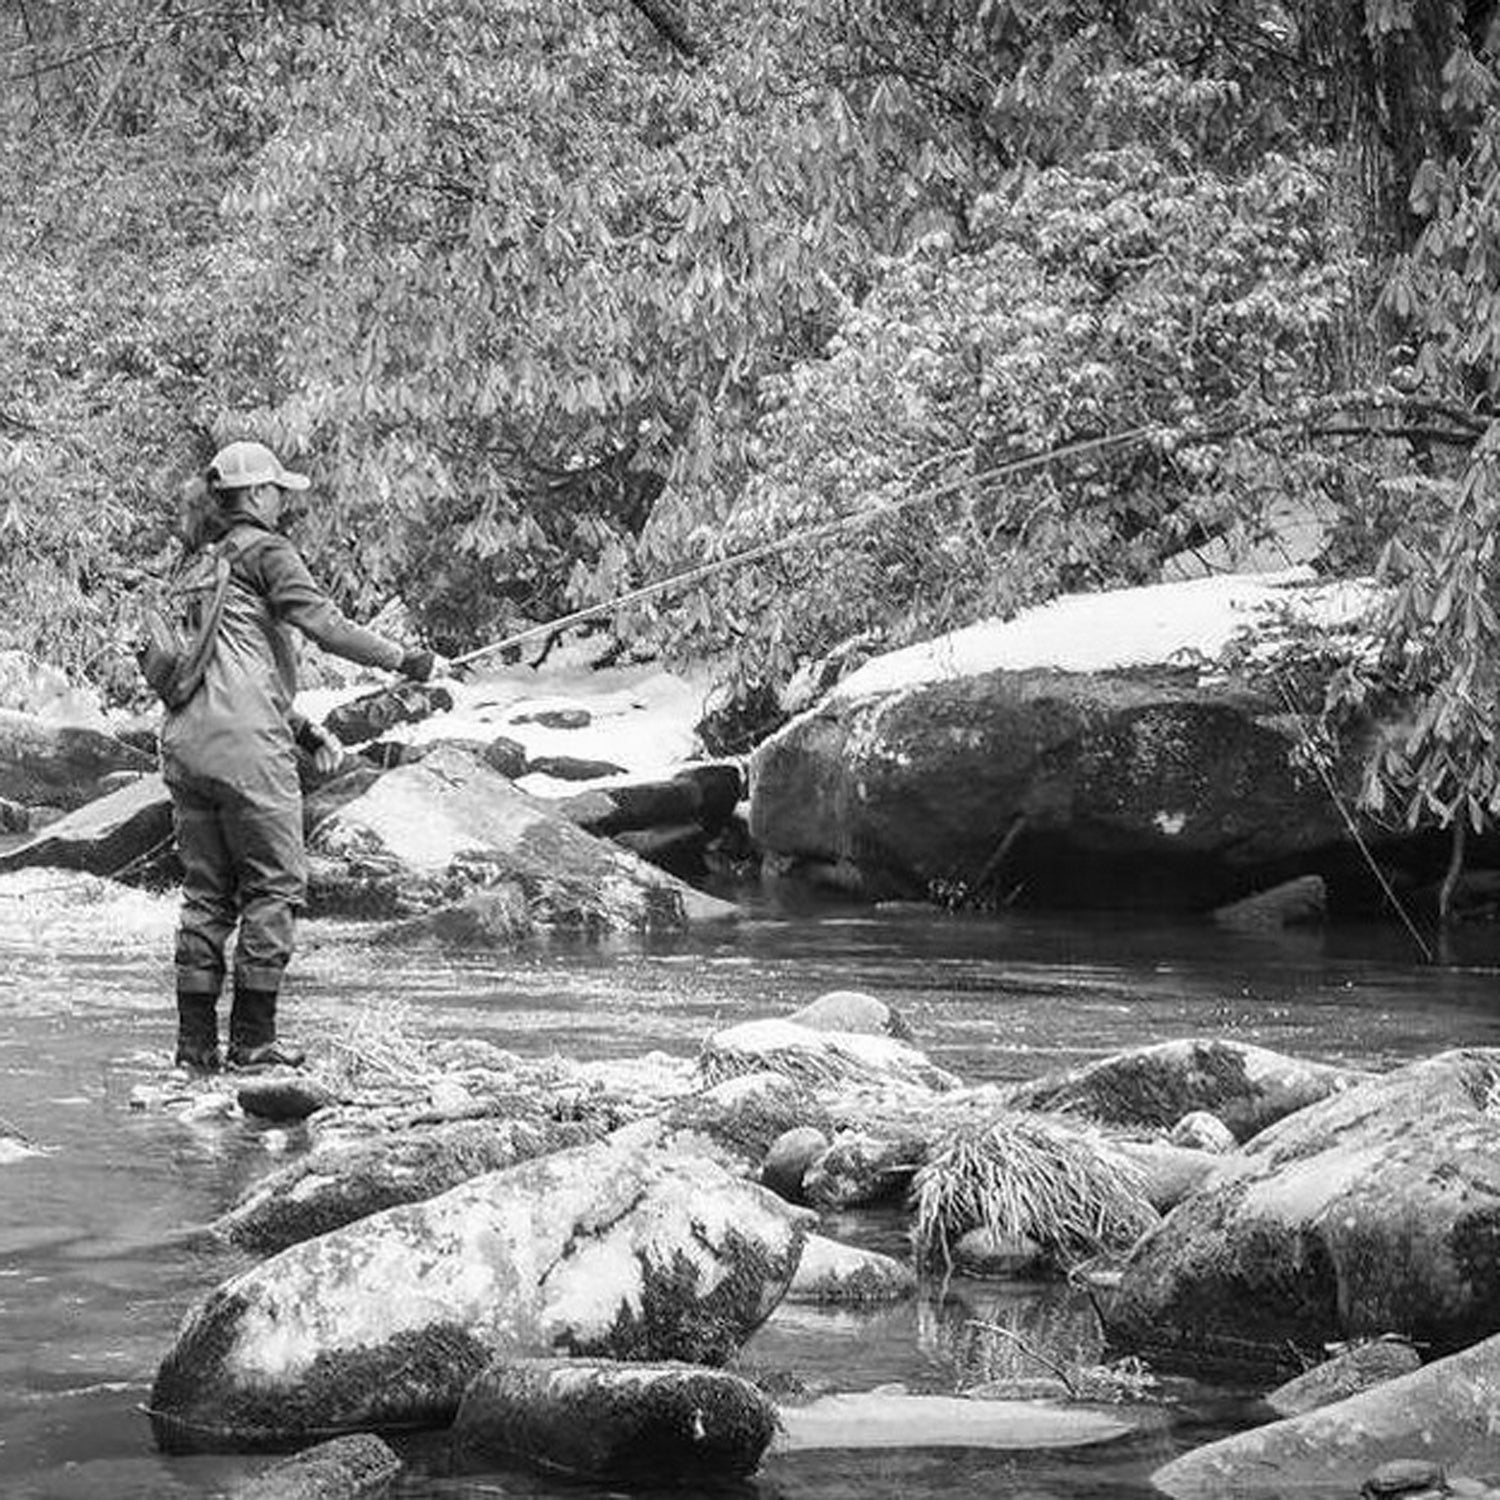 You don't have to go far to reach places most people travel many miles for. That is why Brevard is #BestTowns2015 #Visitwaterfalls #NC #WNCflyfishing #whatgetsyououtdoors photo credits @esocks77